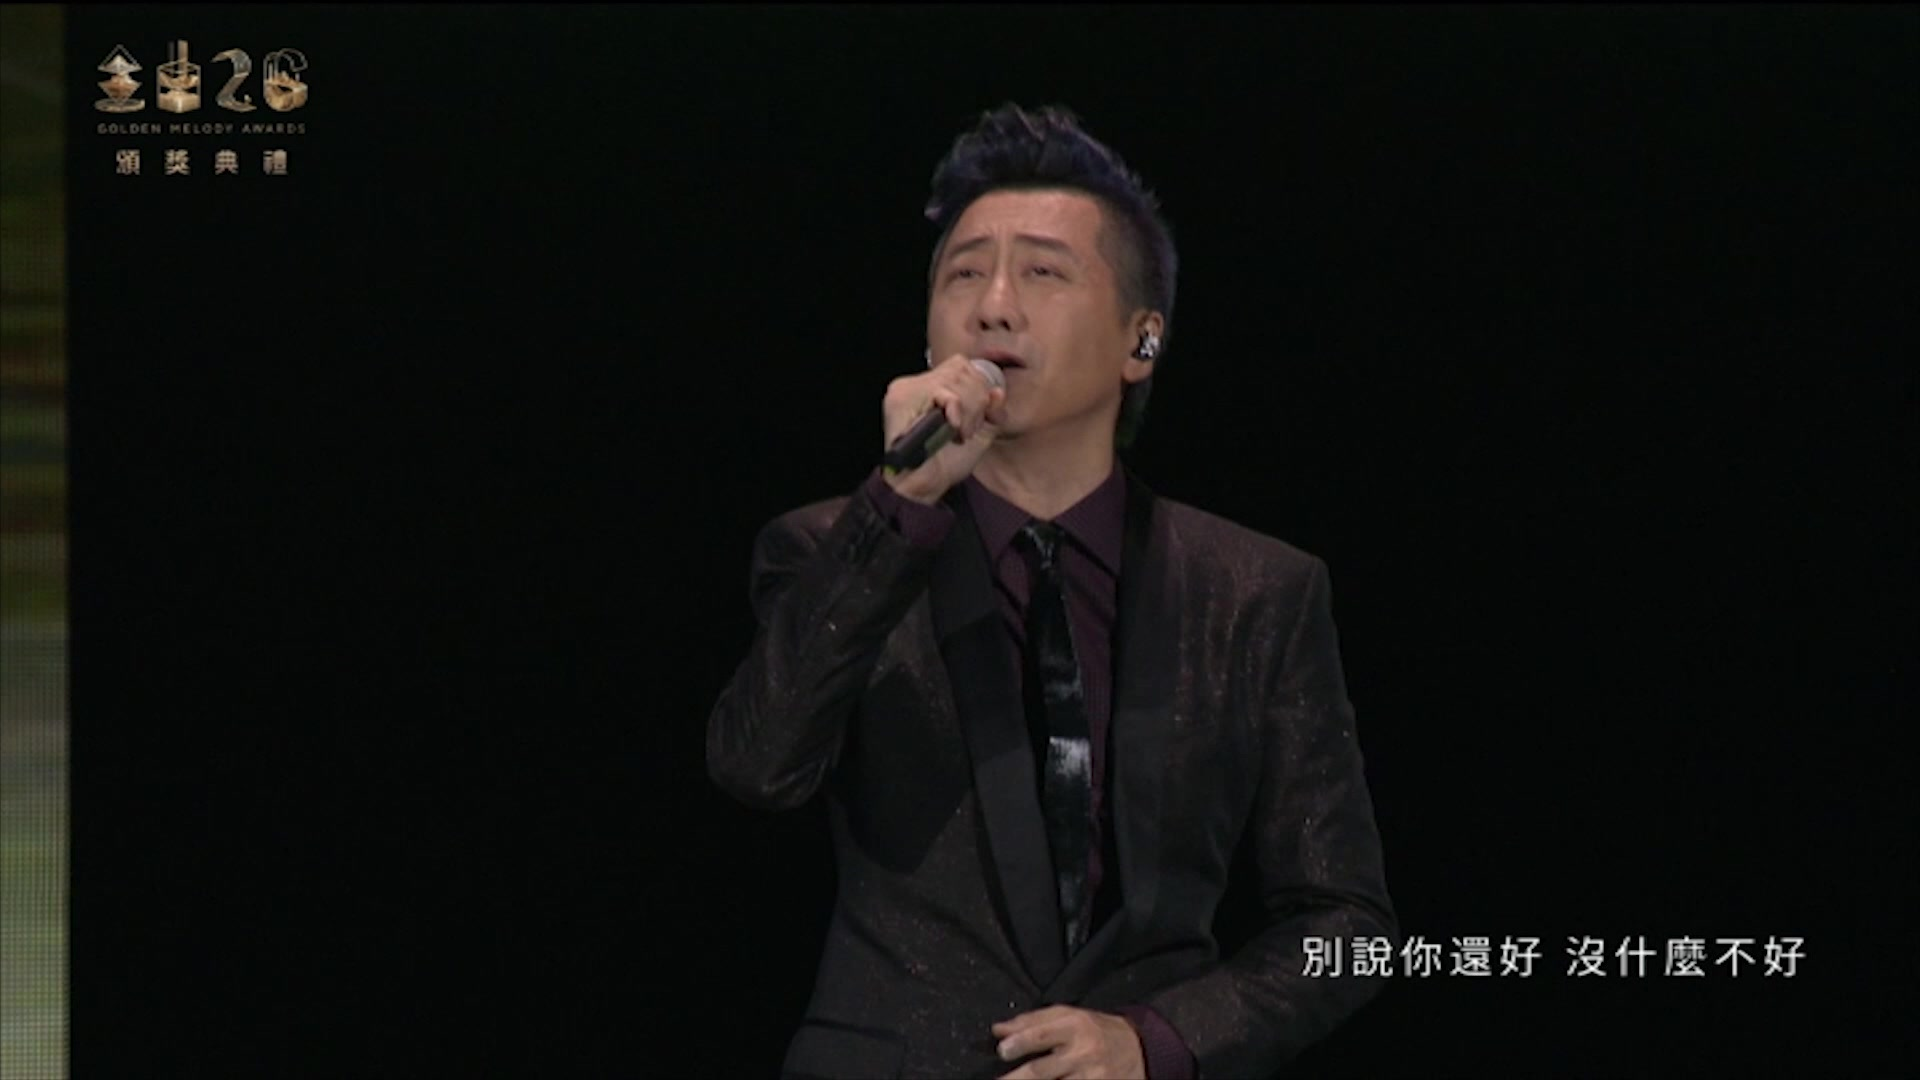 26th Golden Melody Awards Episode 2: Harlem Yu's Performance